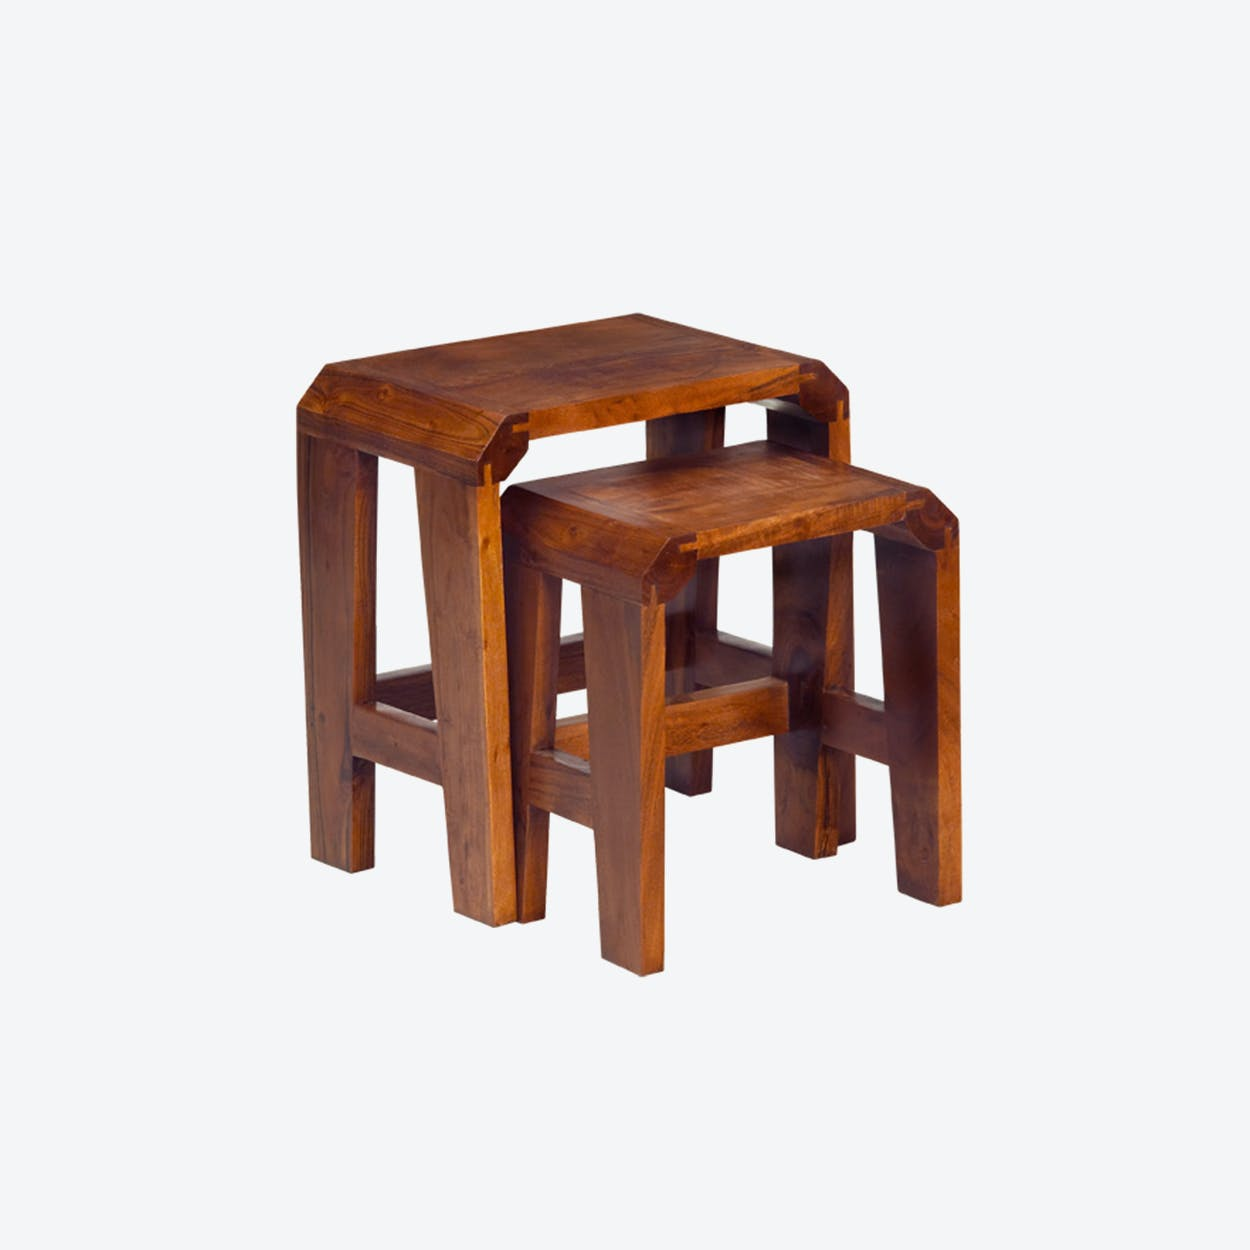 Wooden Montague 2 Piece Nest of Tables